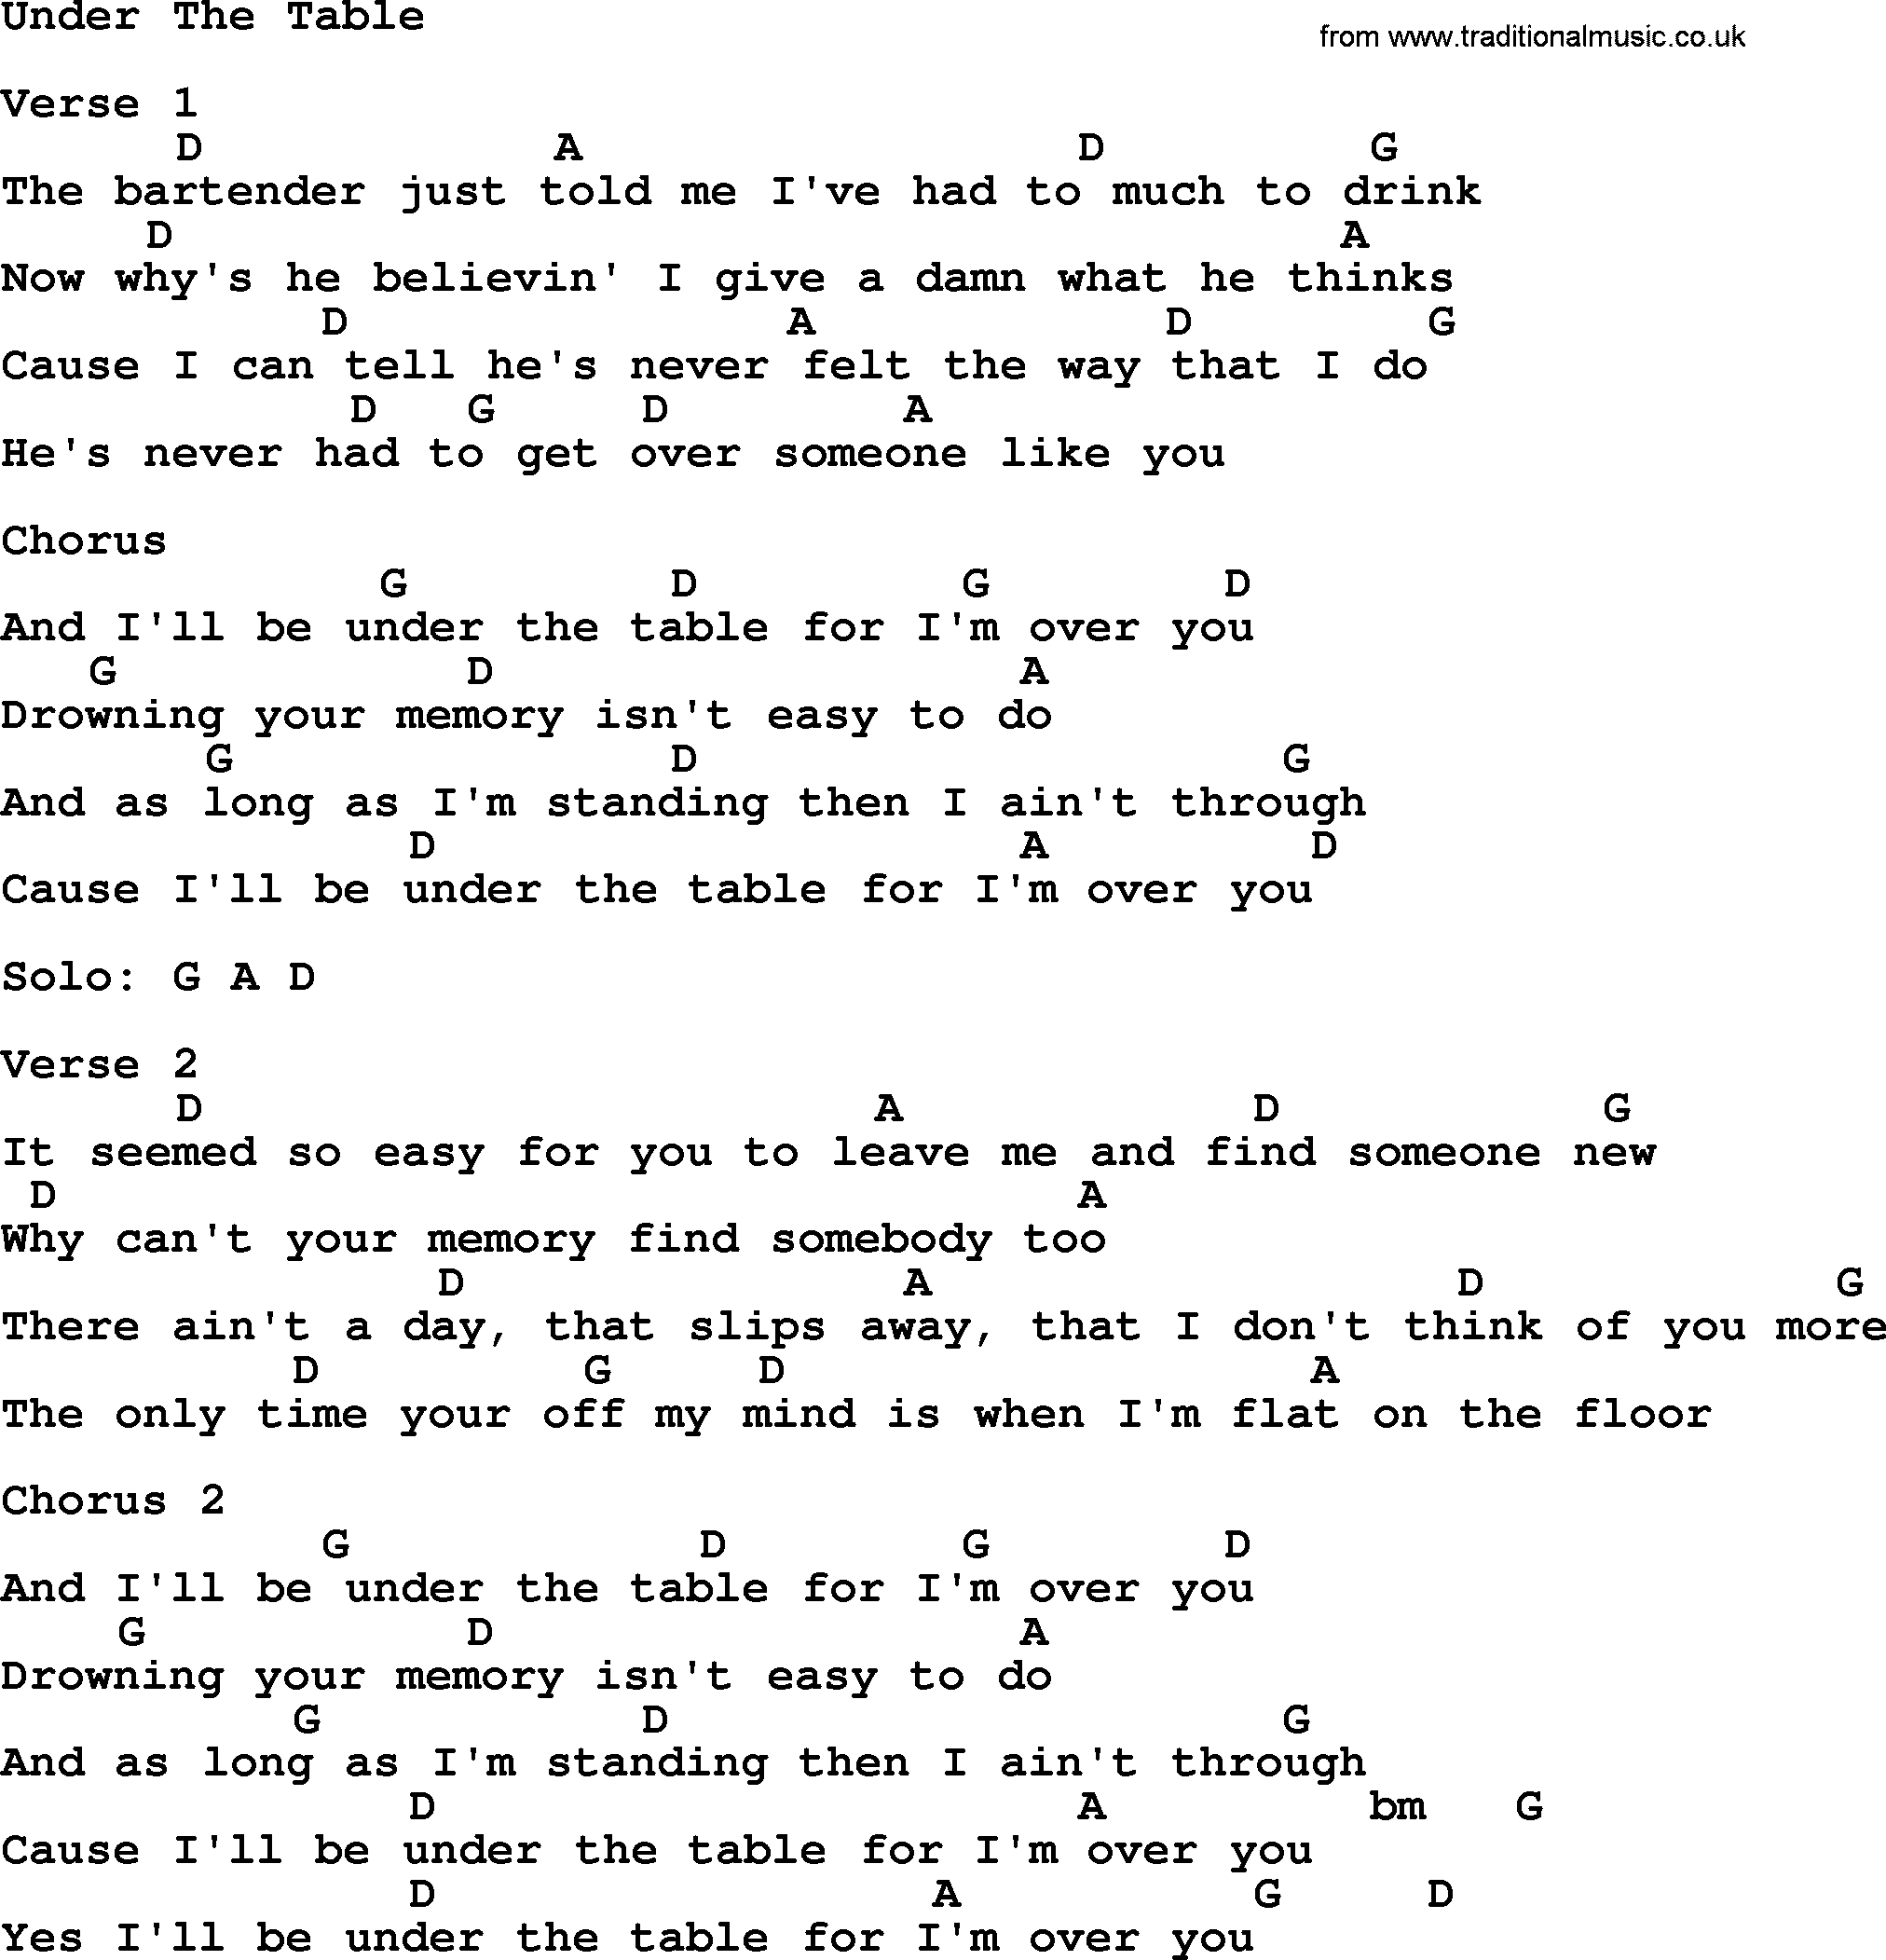 Under The Table, by Garth Brooks - lyrics and chords